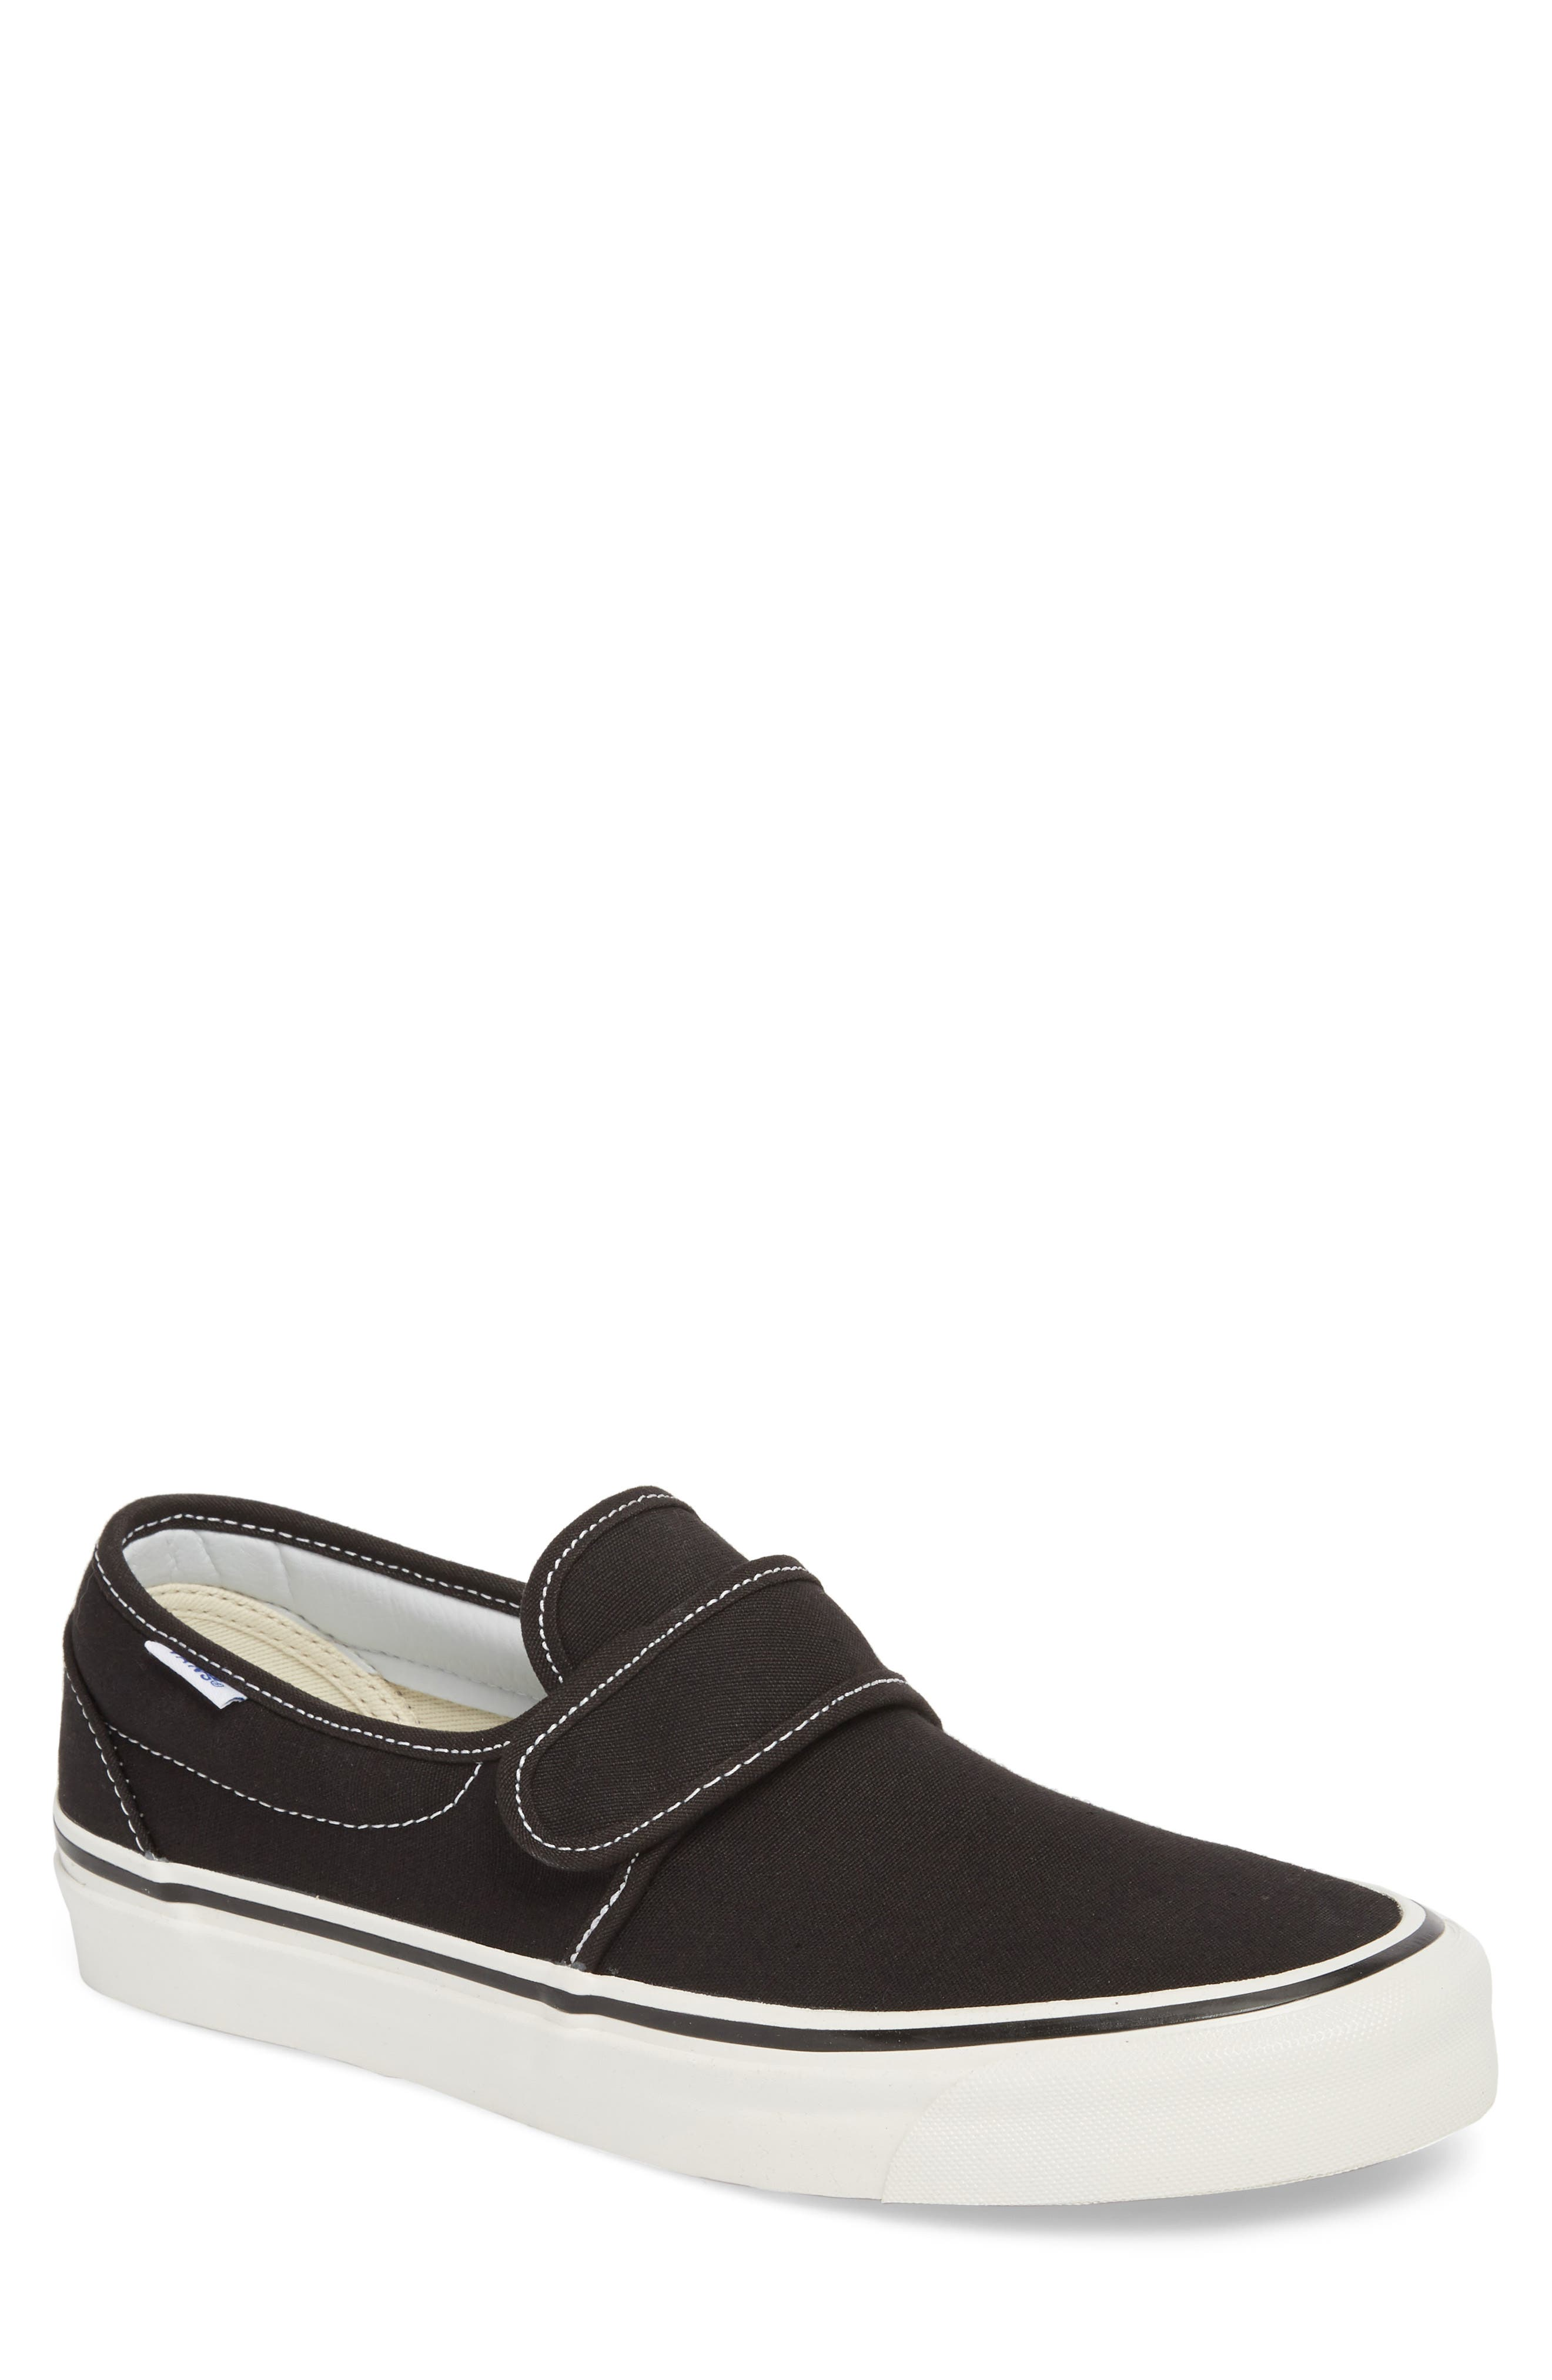 Anaheim Factory Slip-On 47 DX Sneaker,                         Main,                         color, Black